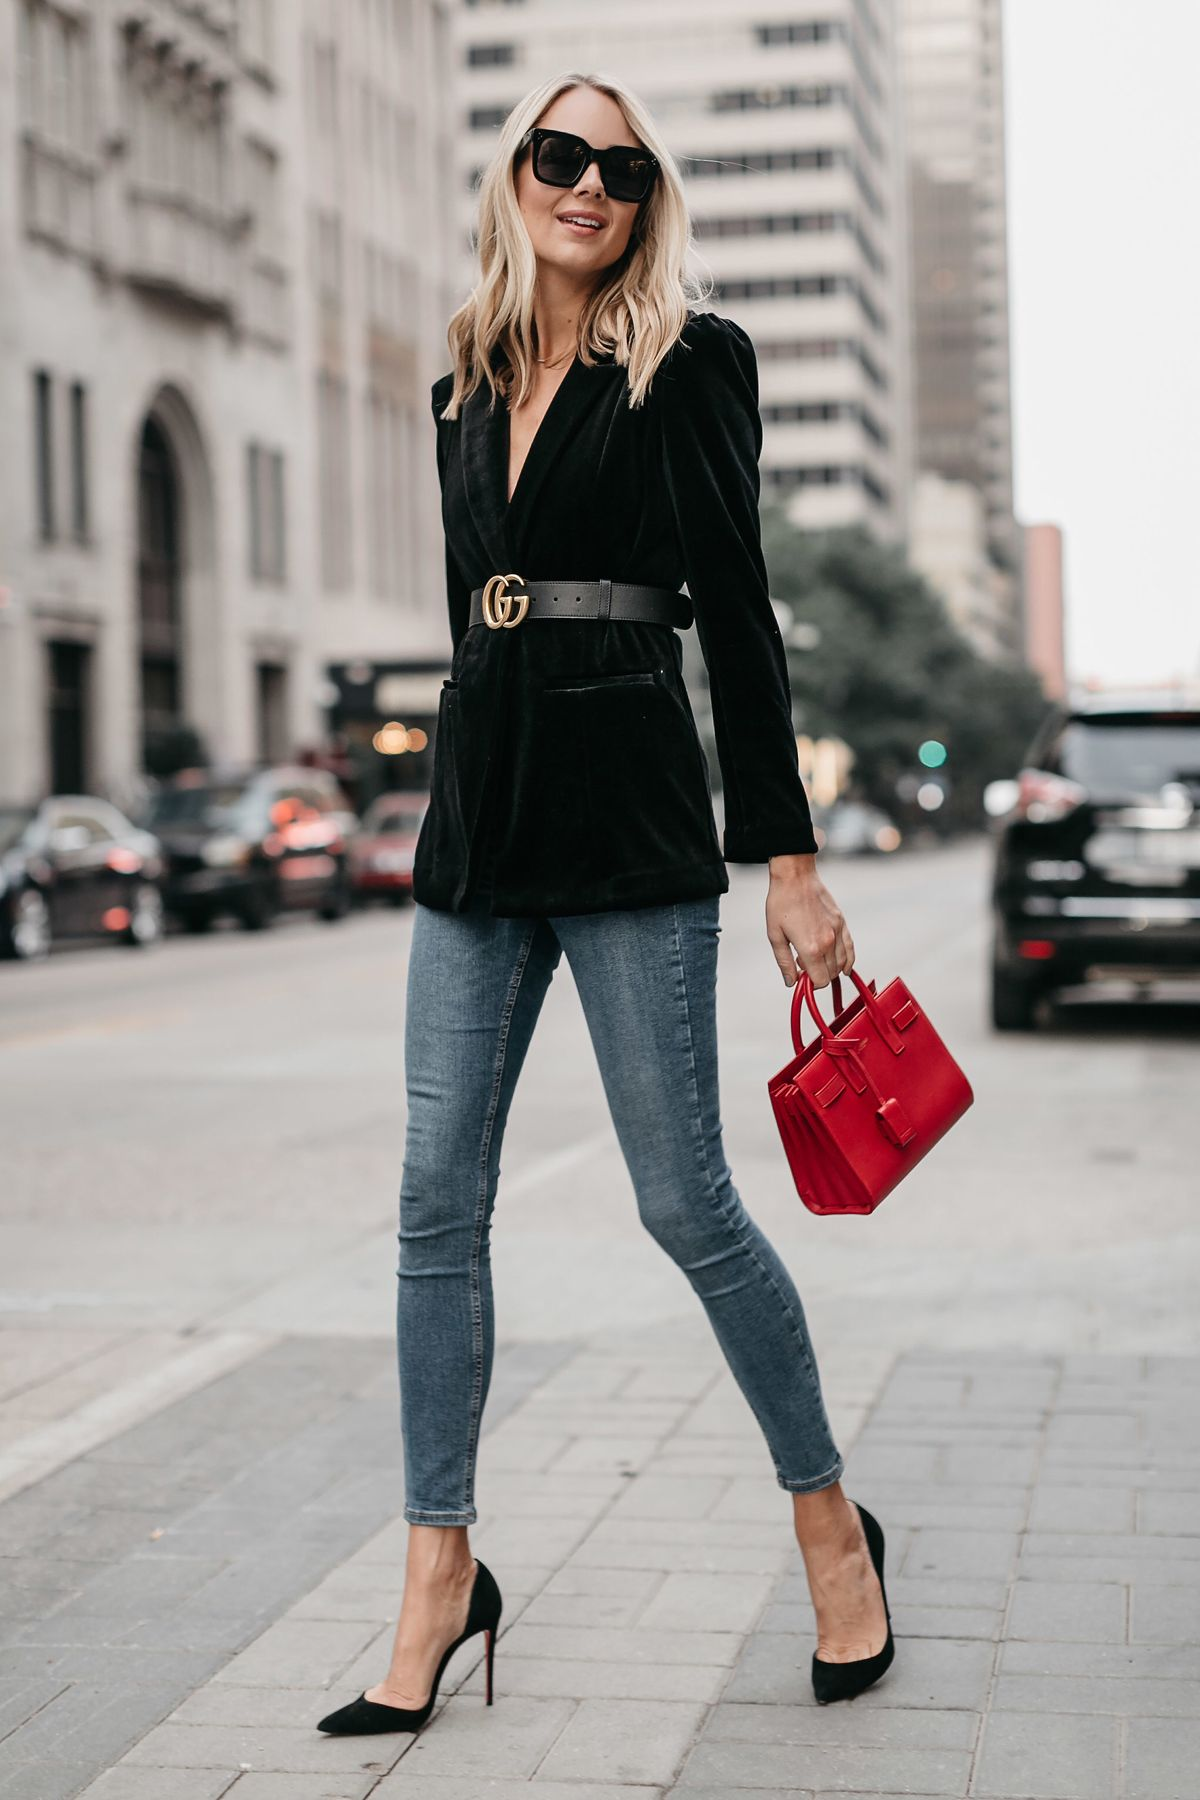 a97a336bf Blonde Woman Wearing Black Velvet Blazer Gucci Marmont Belt Denim Skinny  Jeans Black Pumps Saint Laurent Red Sac De Jour Fashion Jackson Dallas  Blogger ...